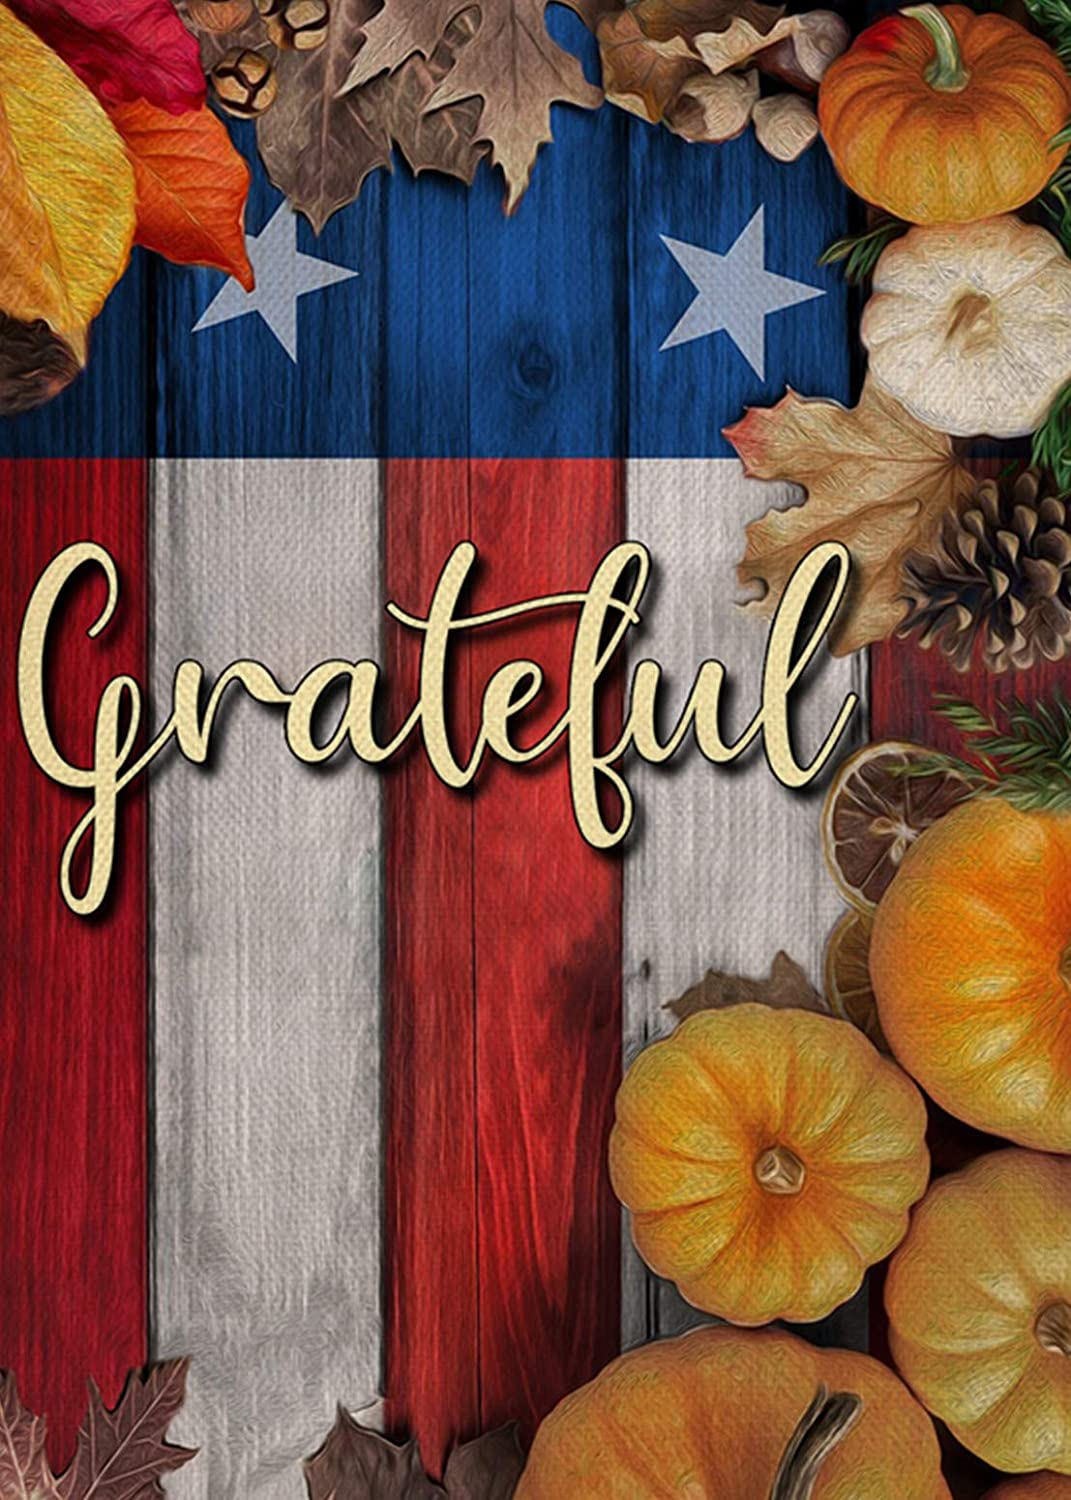 Covido Home Decorative Grateful Fall Garden Flag, American House Yard Pumpkins Patriotic Decor Sign, UAS Autumn Outside Decorations Thanksgiving Veterans Day Outdoor Small Flag Double Sided 12x18